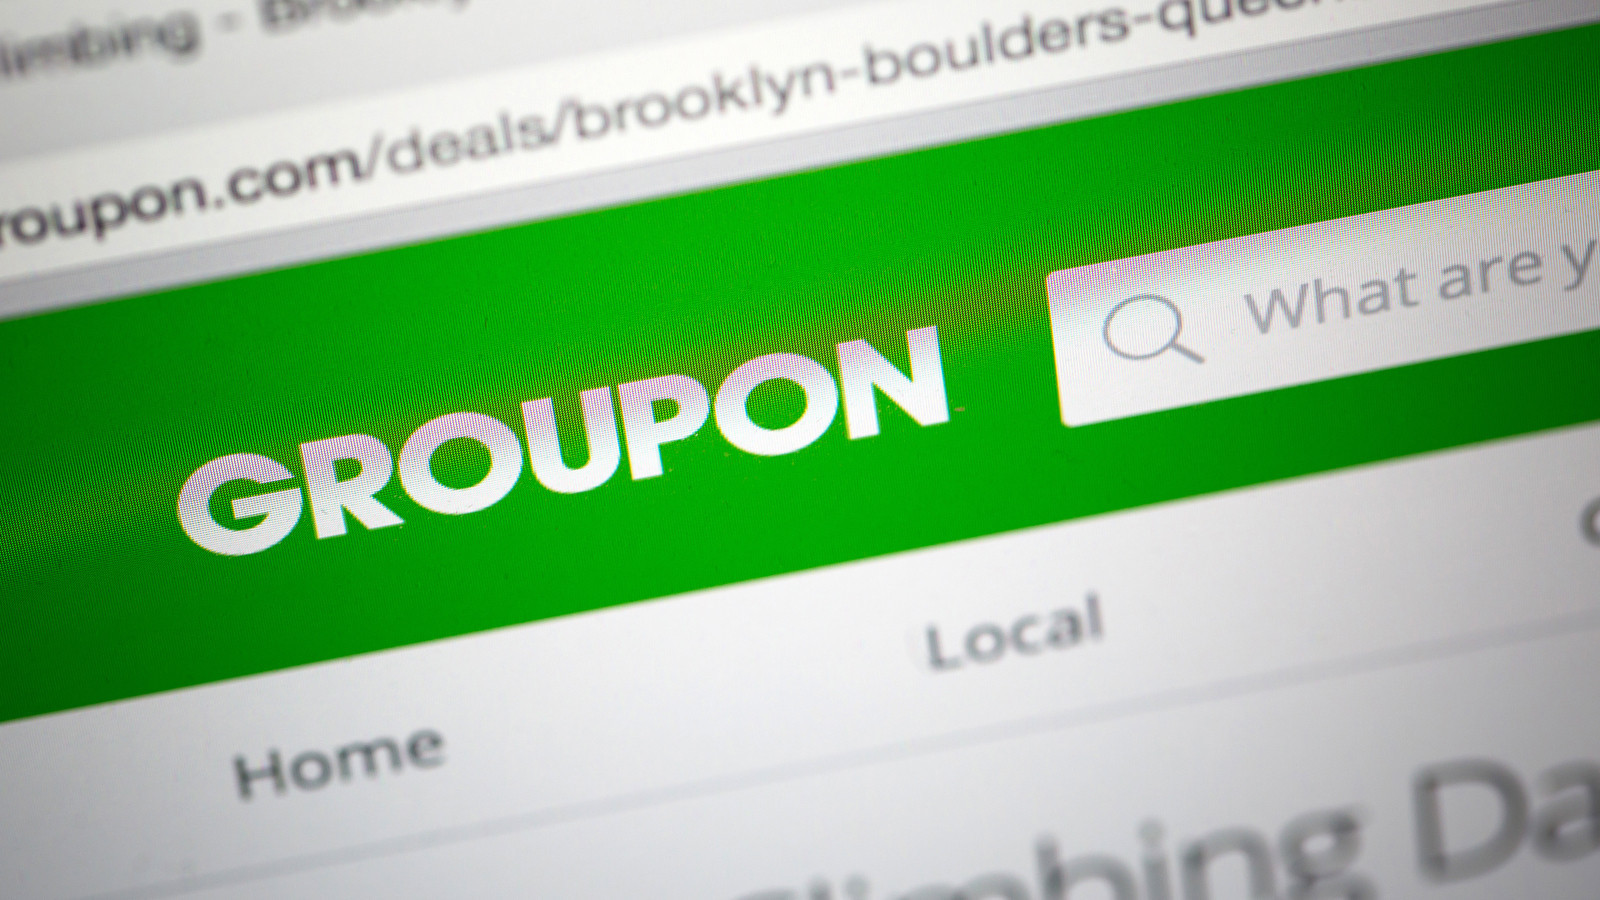 Groupon stock soars after alibaba takes 5 percent stake chicago groupon stock soars after alibaba takes 5 percent stake chicago tribune buycottarizona Image collections